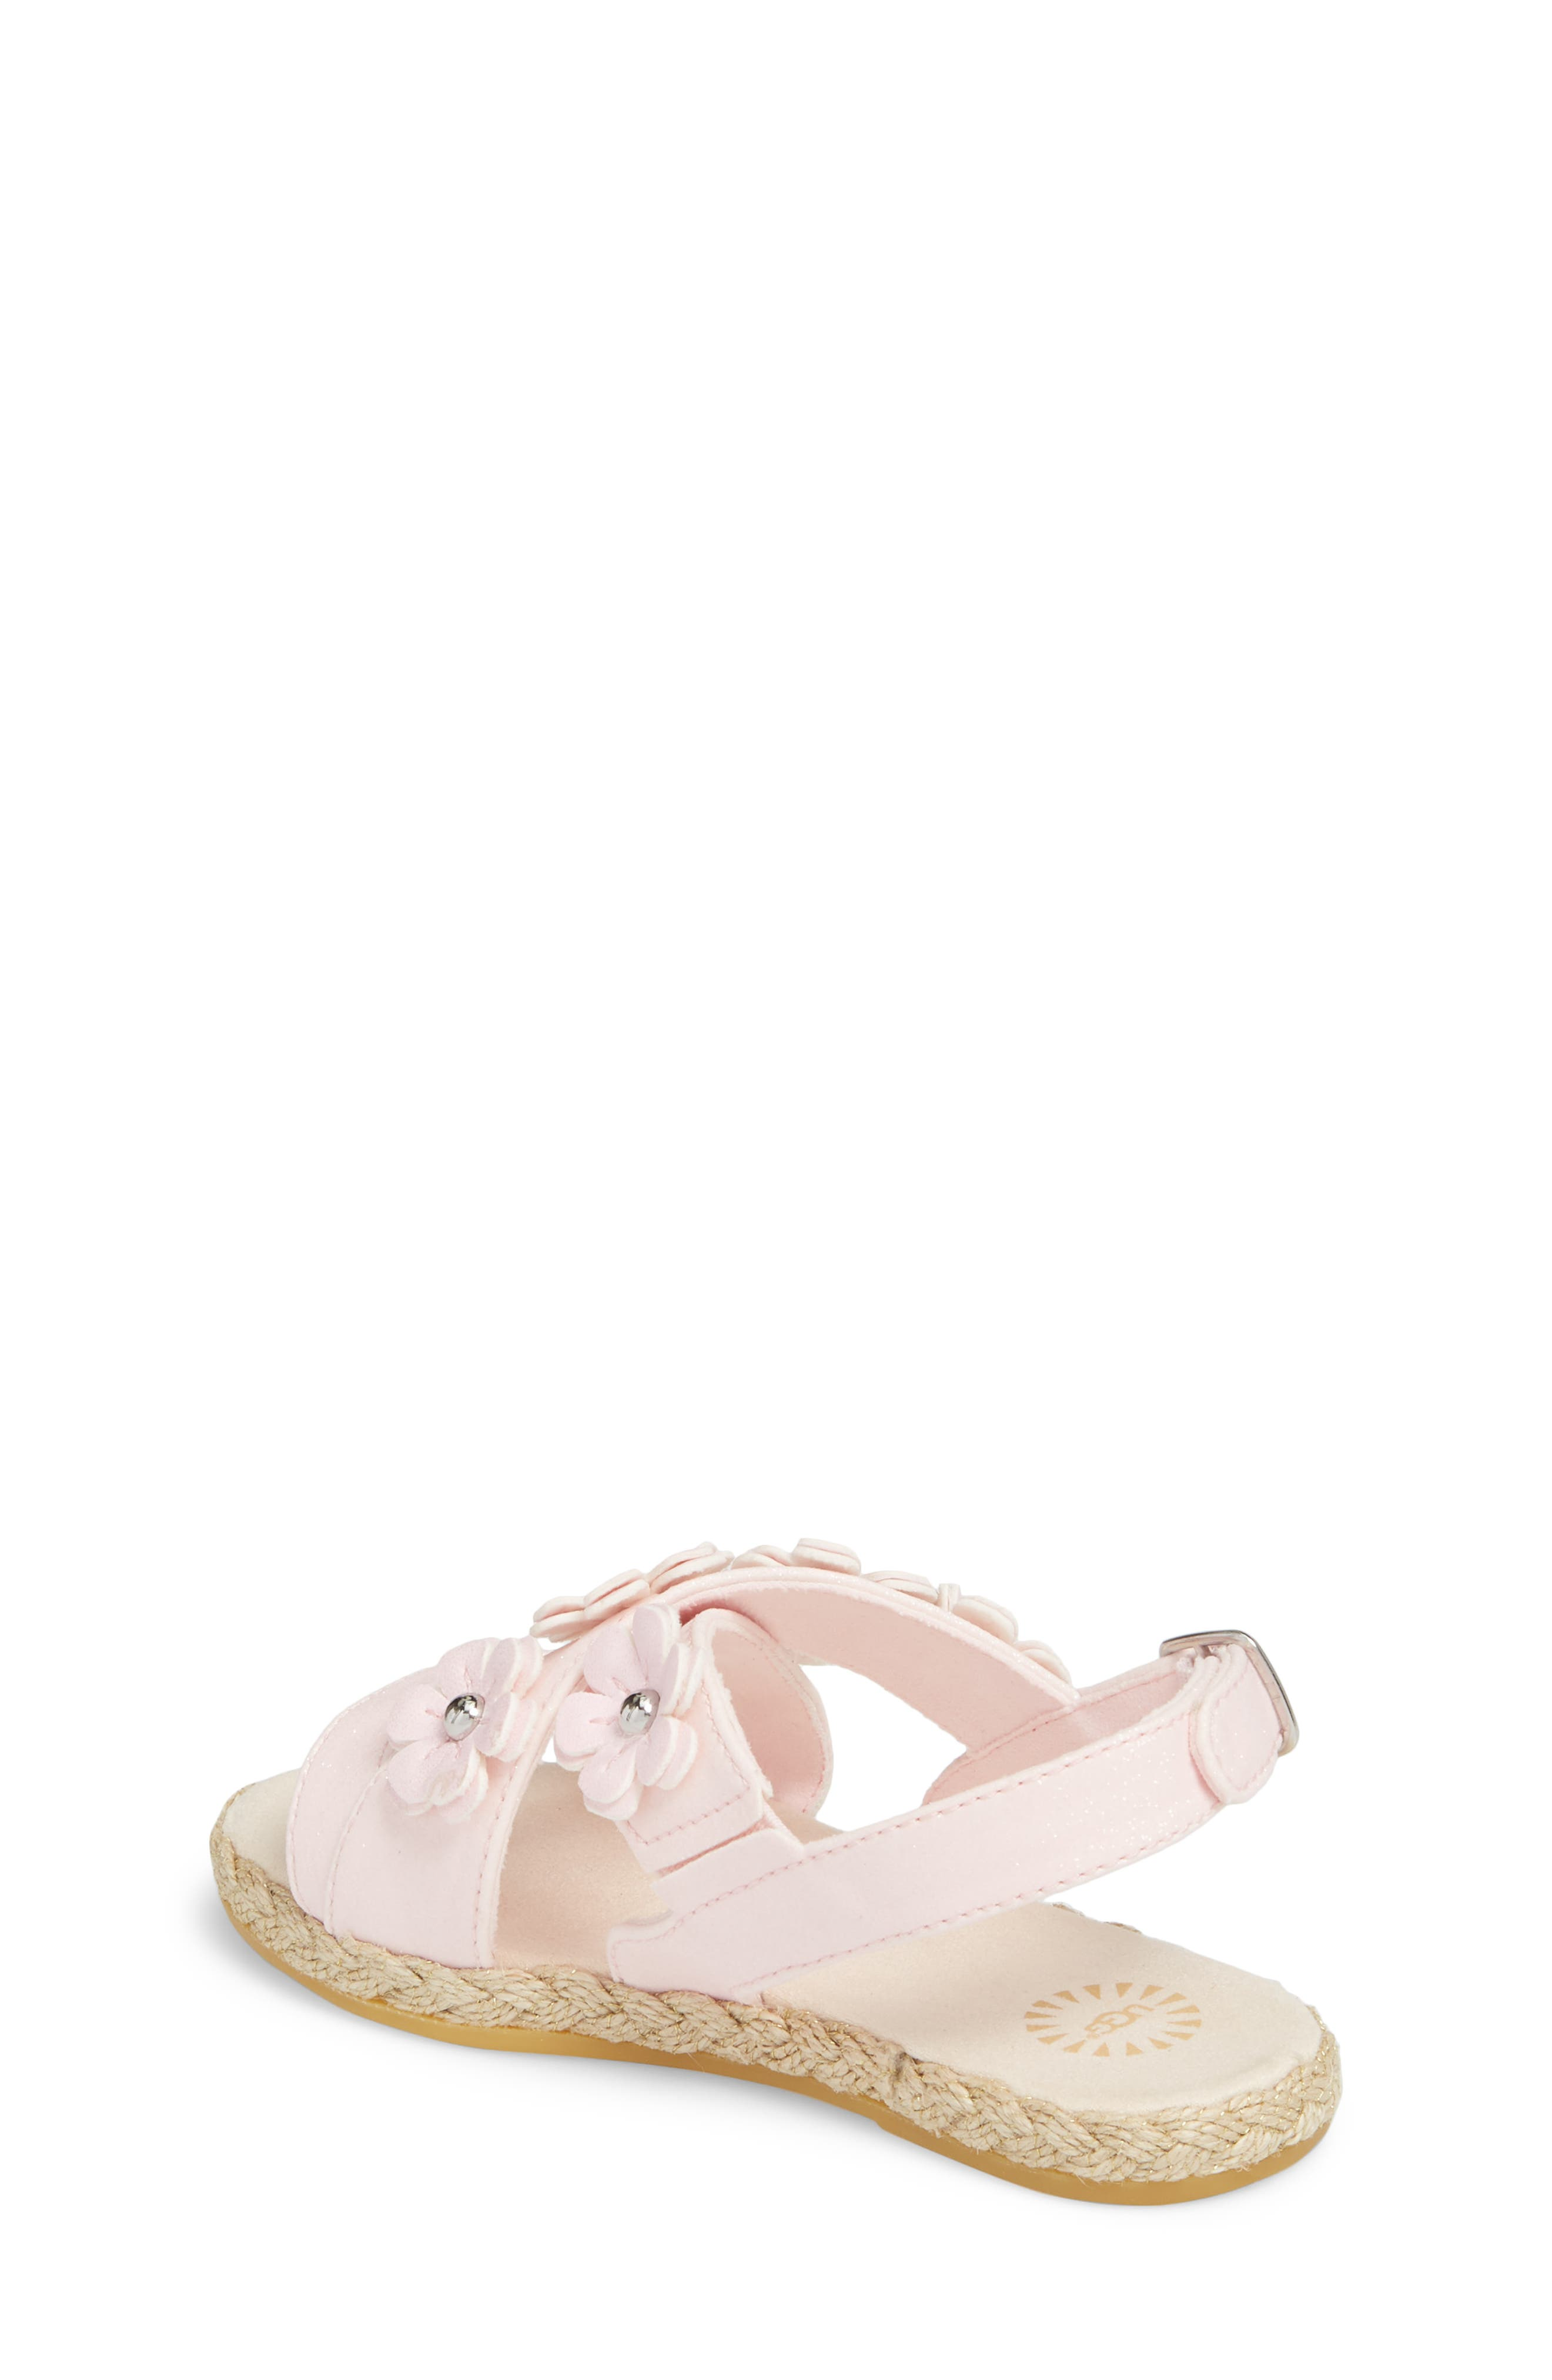 Allairey Sparkles Espadrille Sandal,                             Alternate thumbnail 2, color,                             SEASHELL PINK